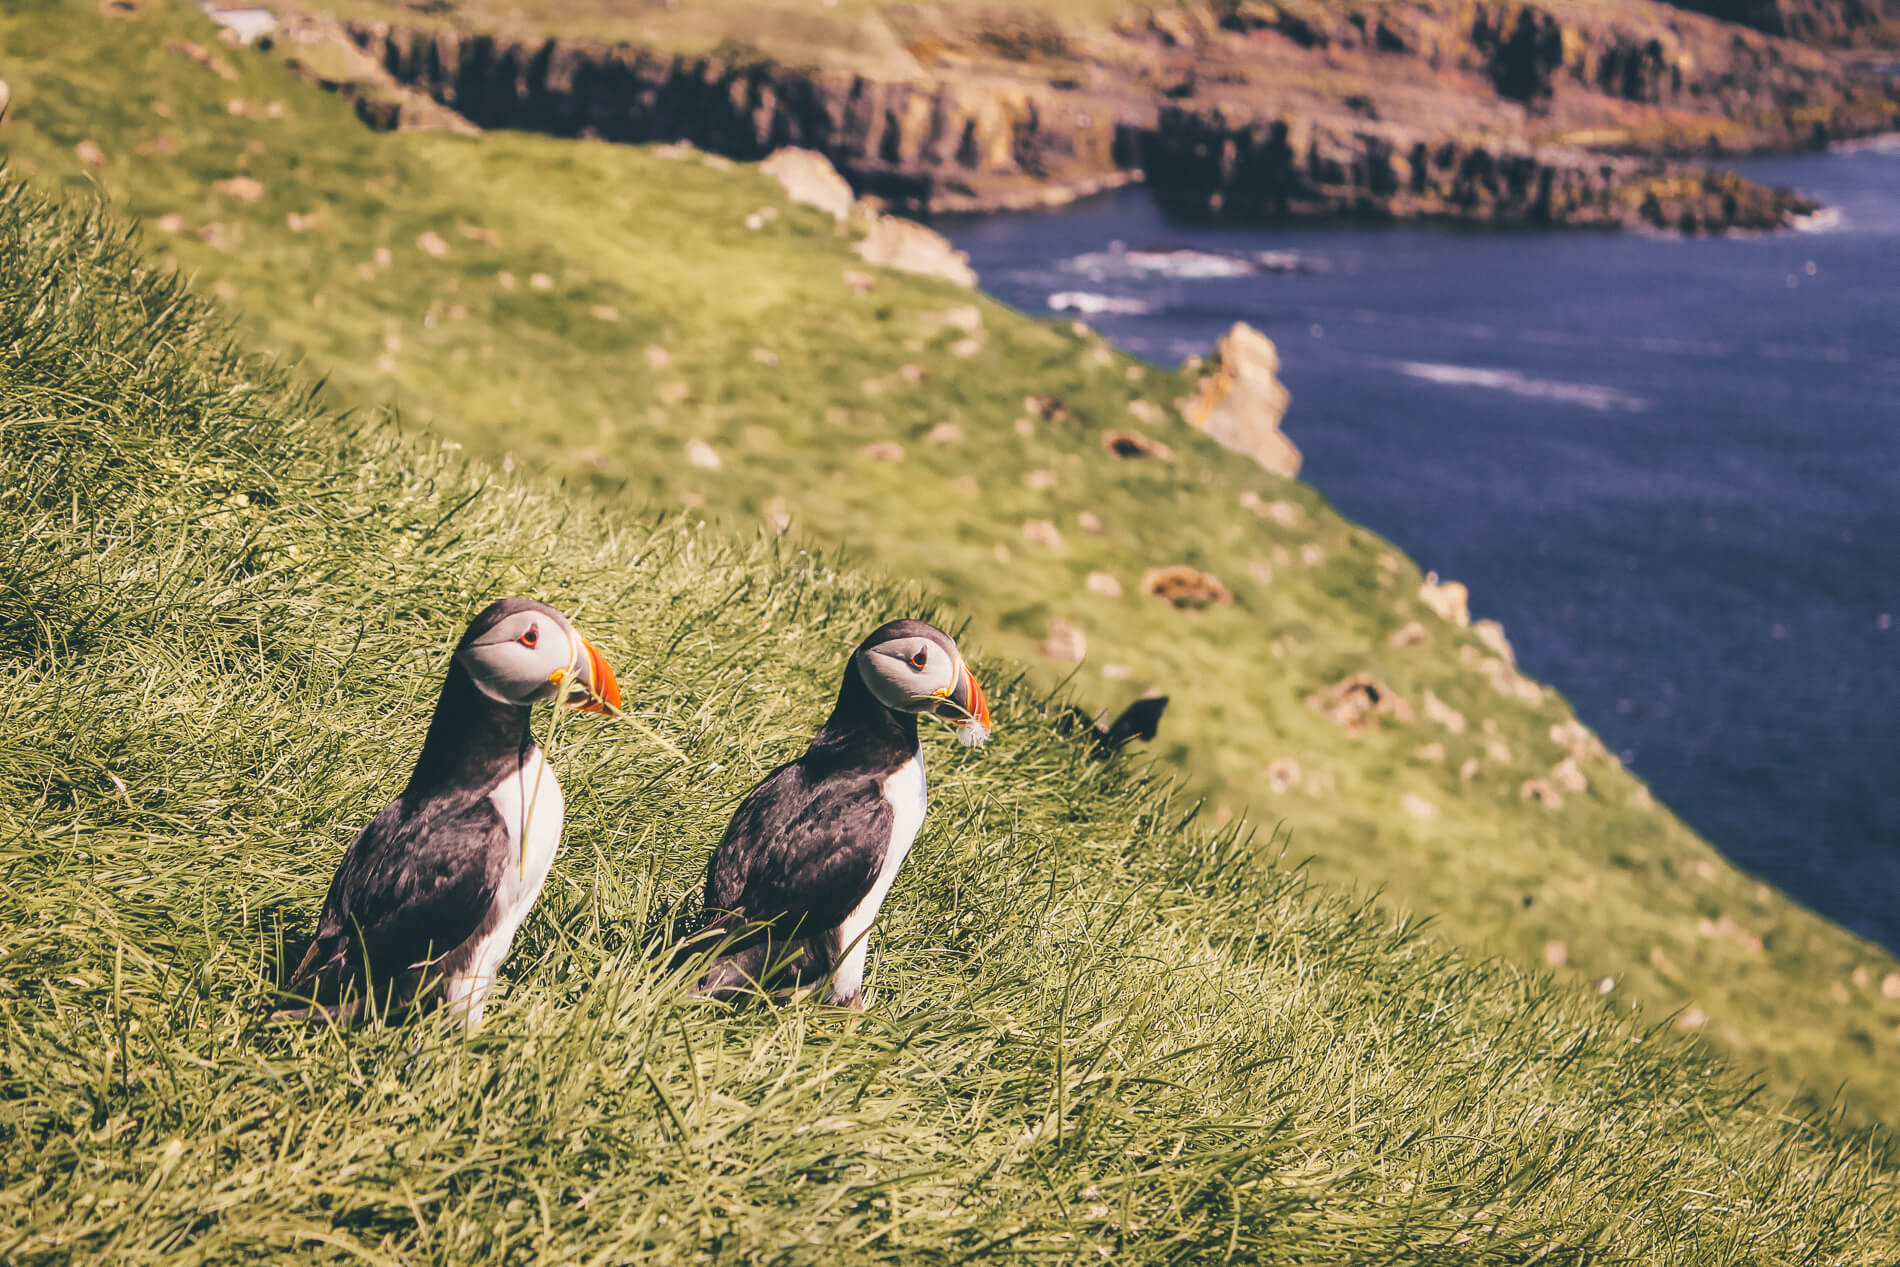 faroe islands travel guide, visit faroe islands, faroe islands by car, puffin colony